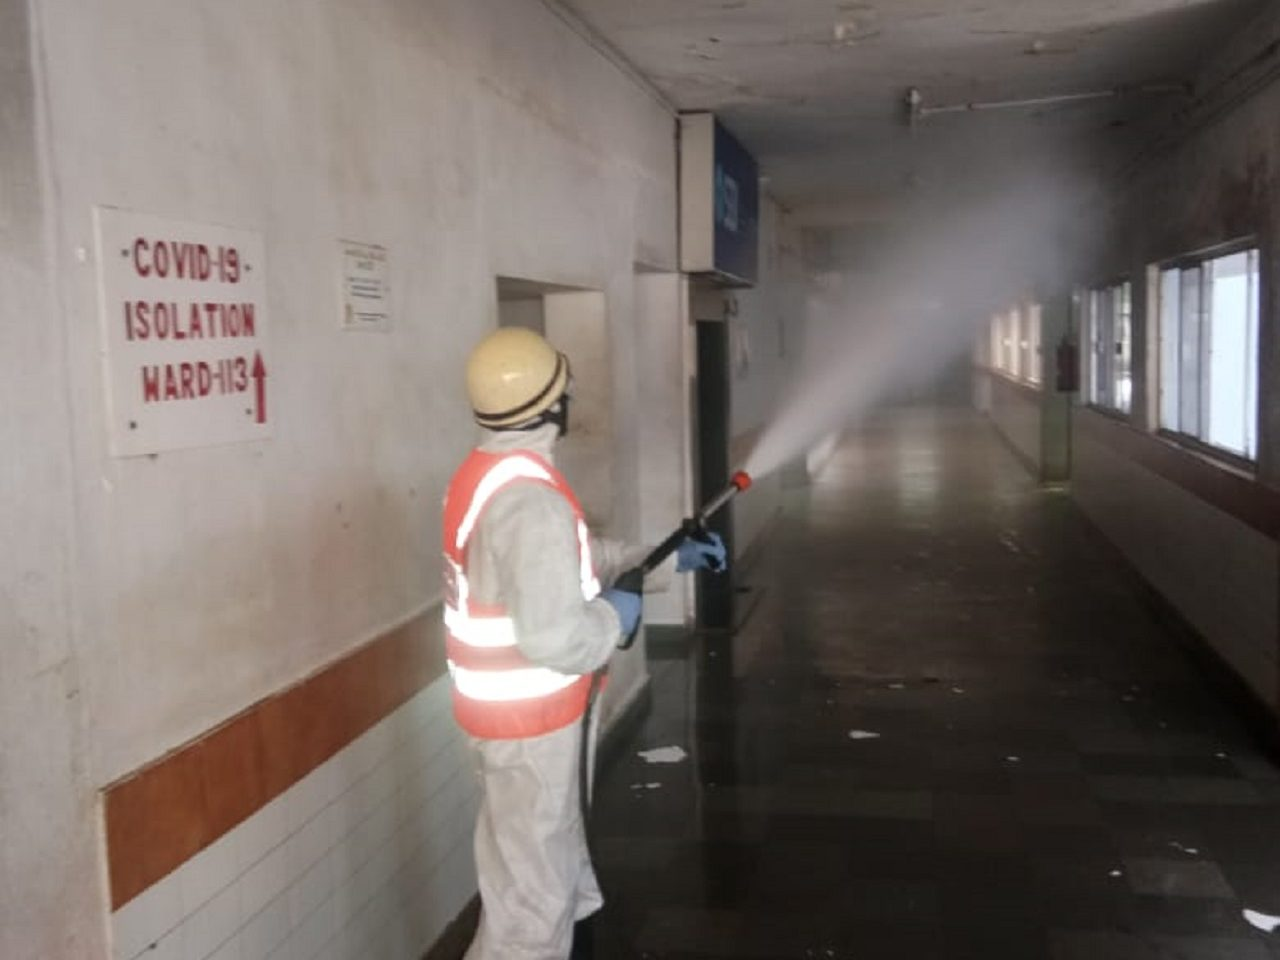 The Sanitization Work Undertaken By DFES